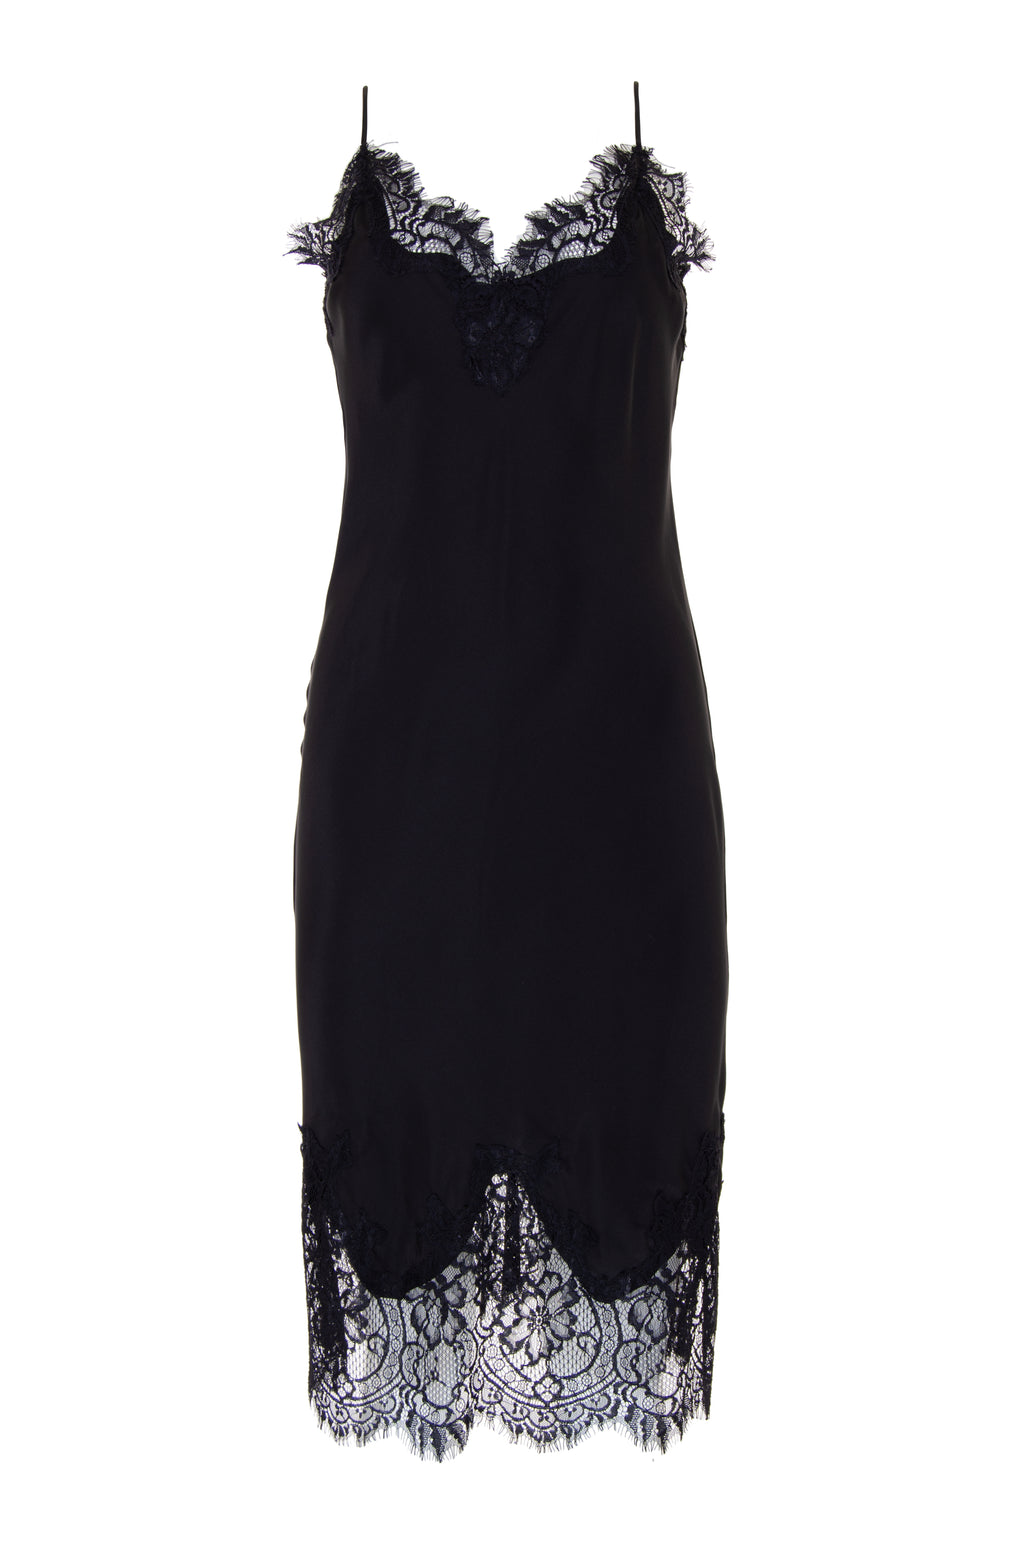 The Coco Bodice Lace Dress in black.